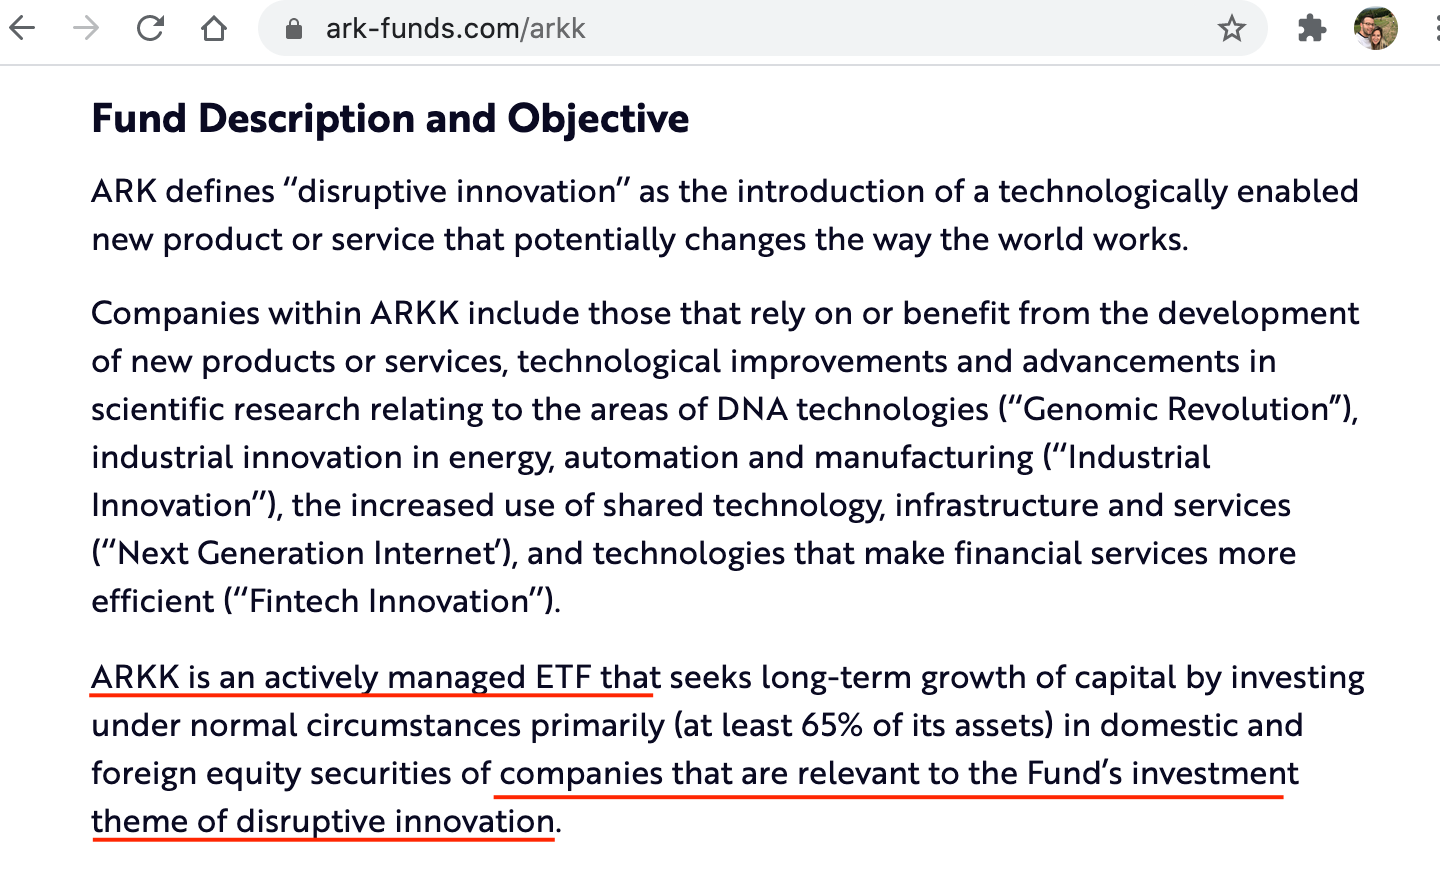 ARKK is an actively managed thematic ETF